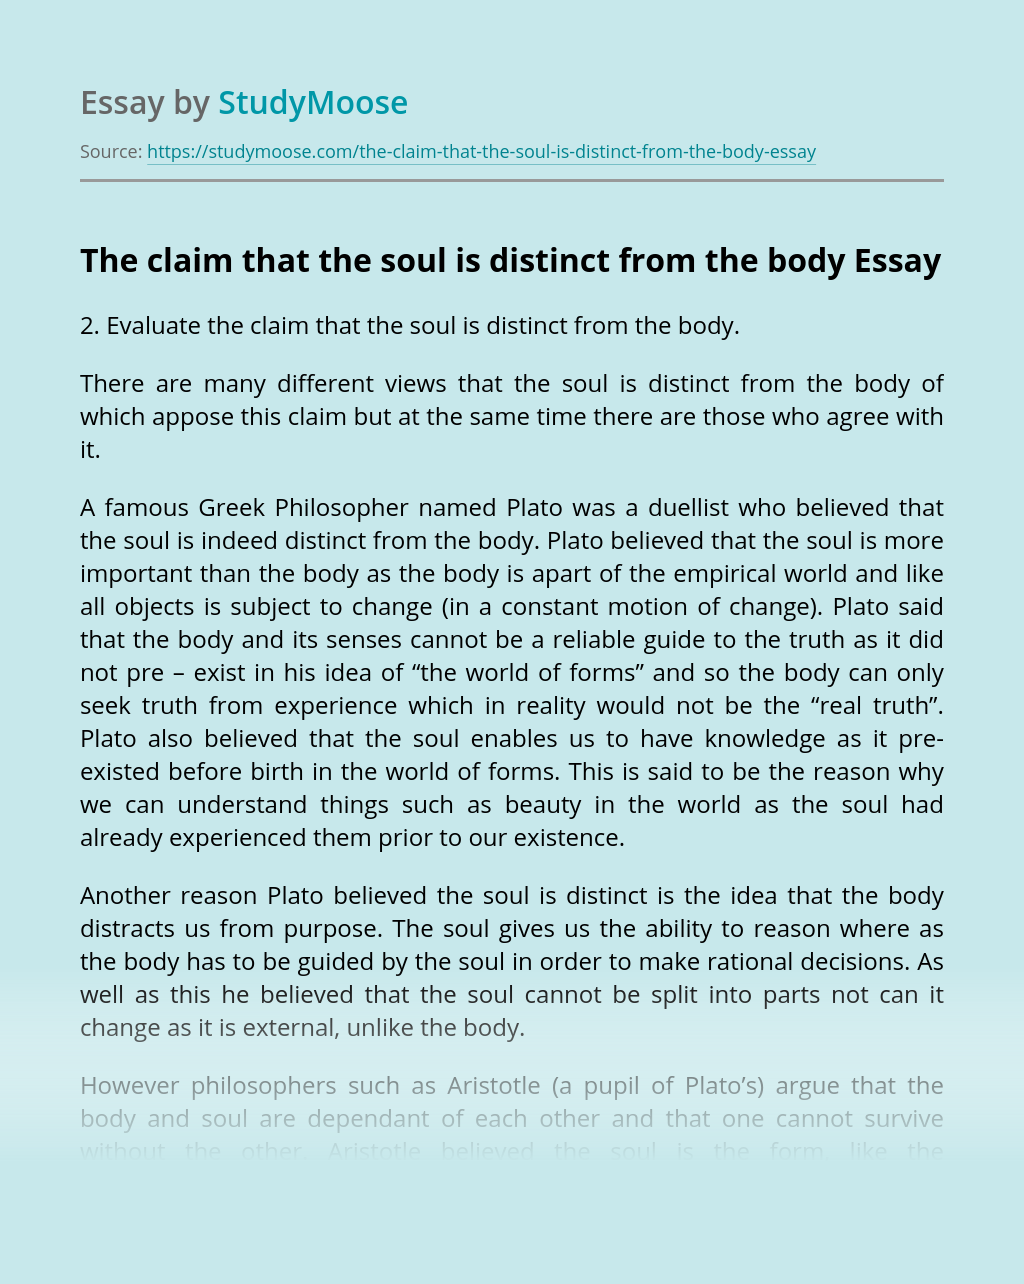 The claim that the soul is distinct from the body